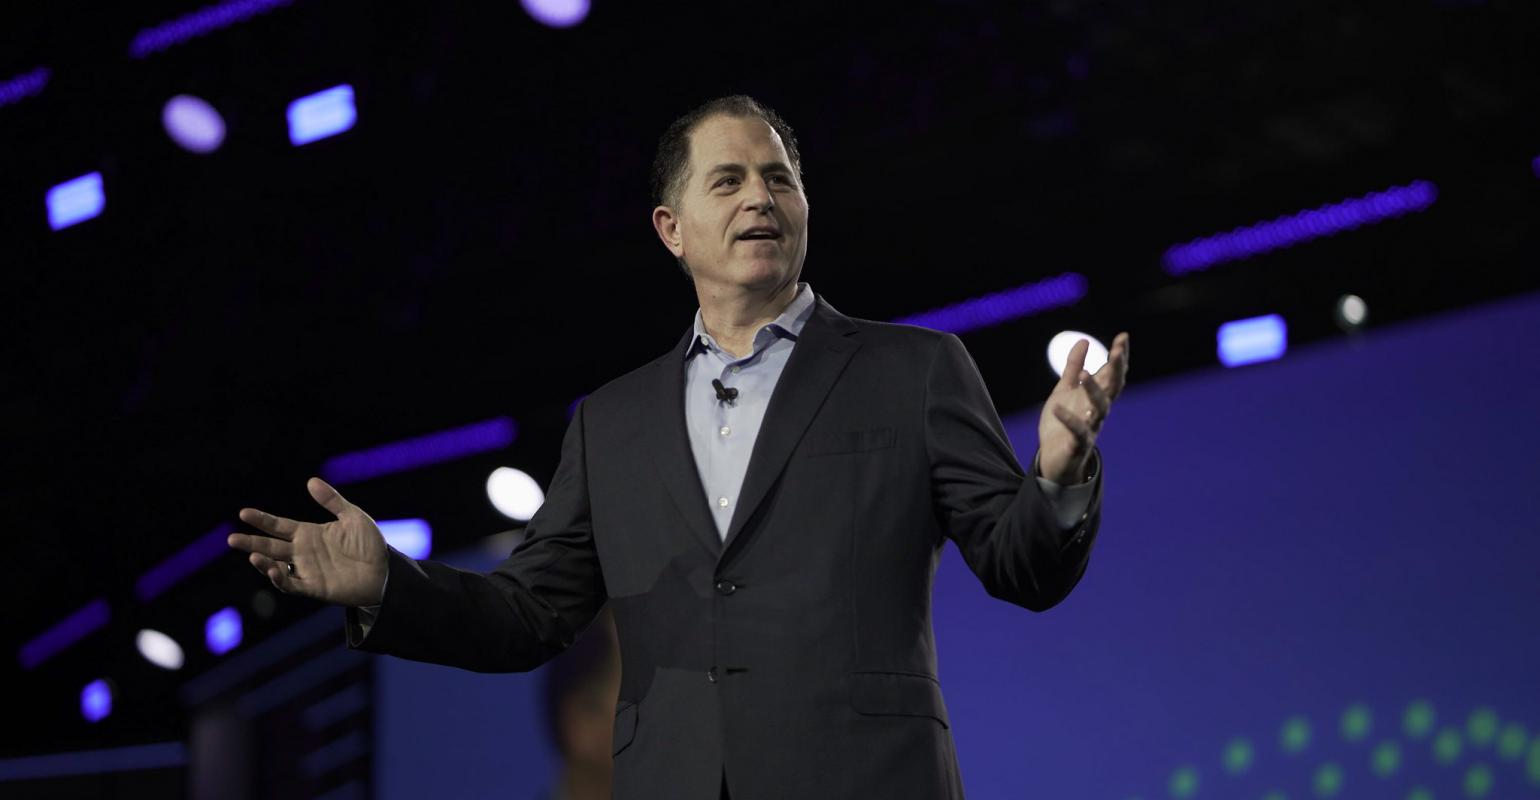 Michael Dell data